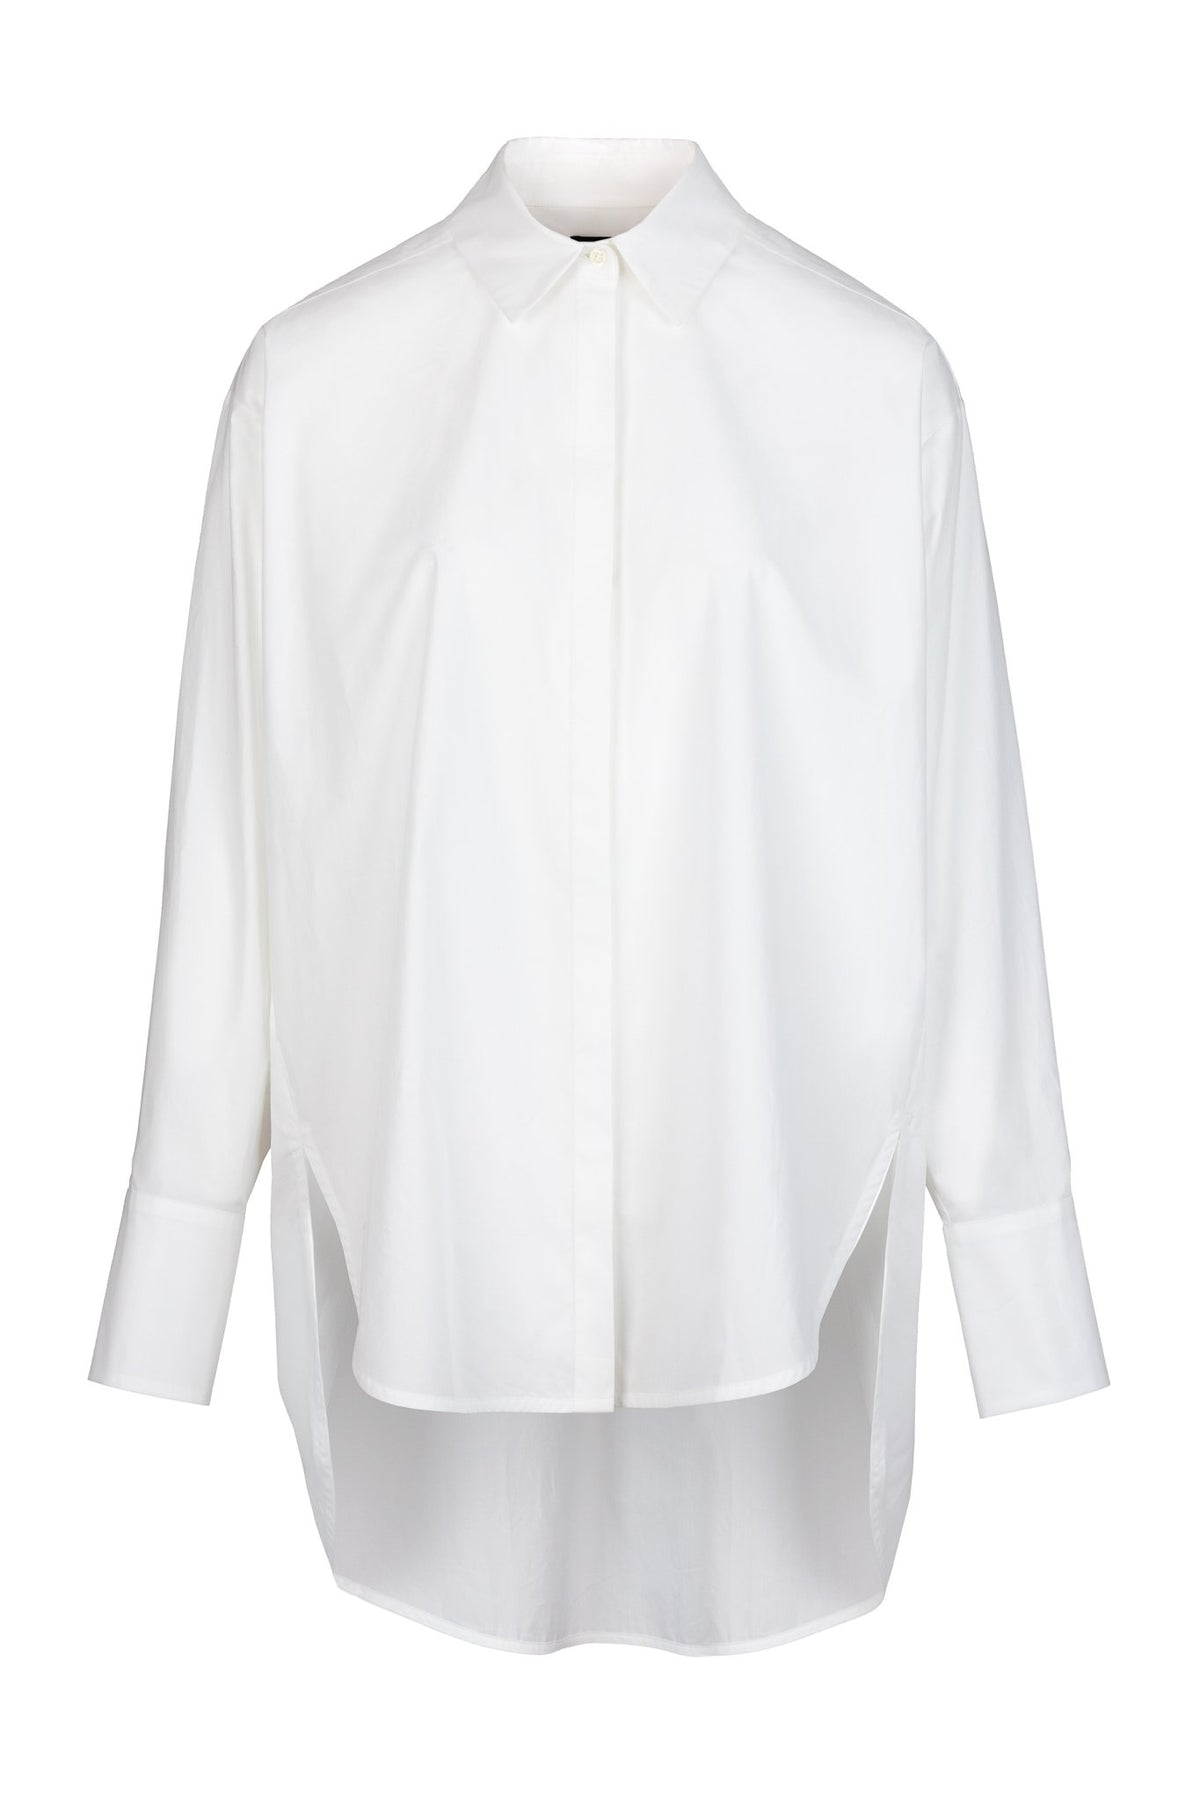 Frenk | Shirt | White